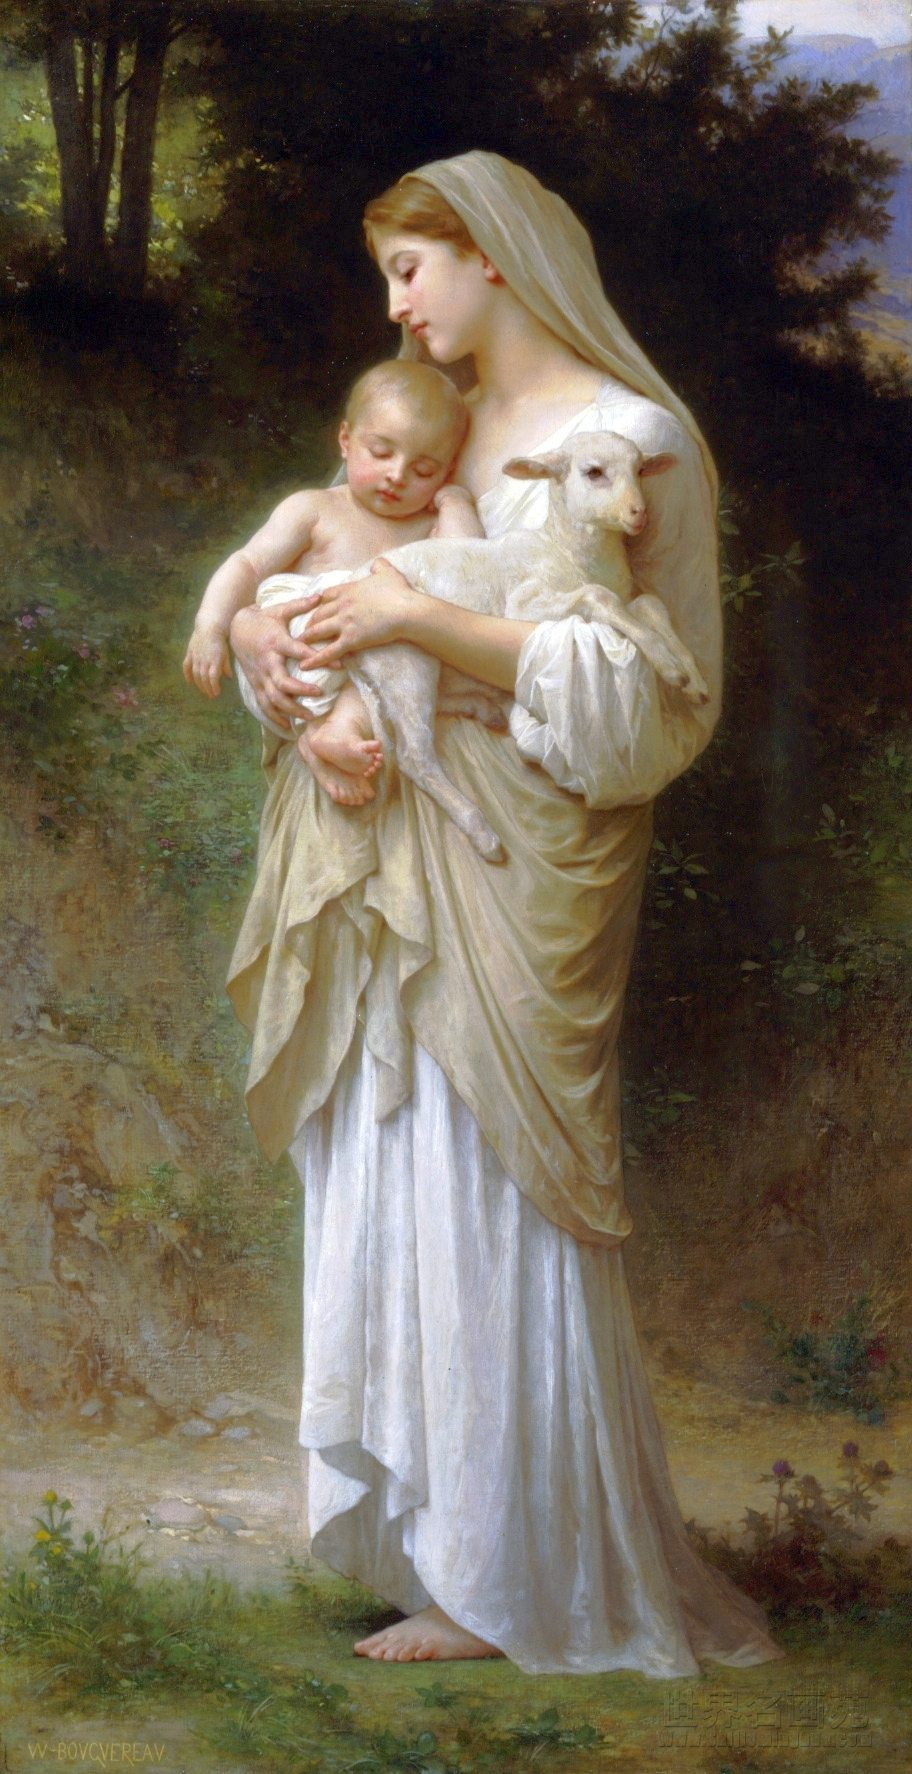 L'Innocence (1893), by William Bouguereau